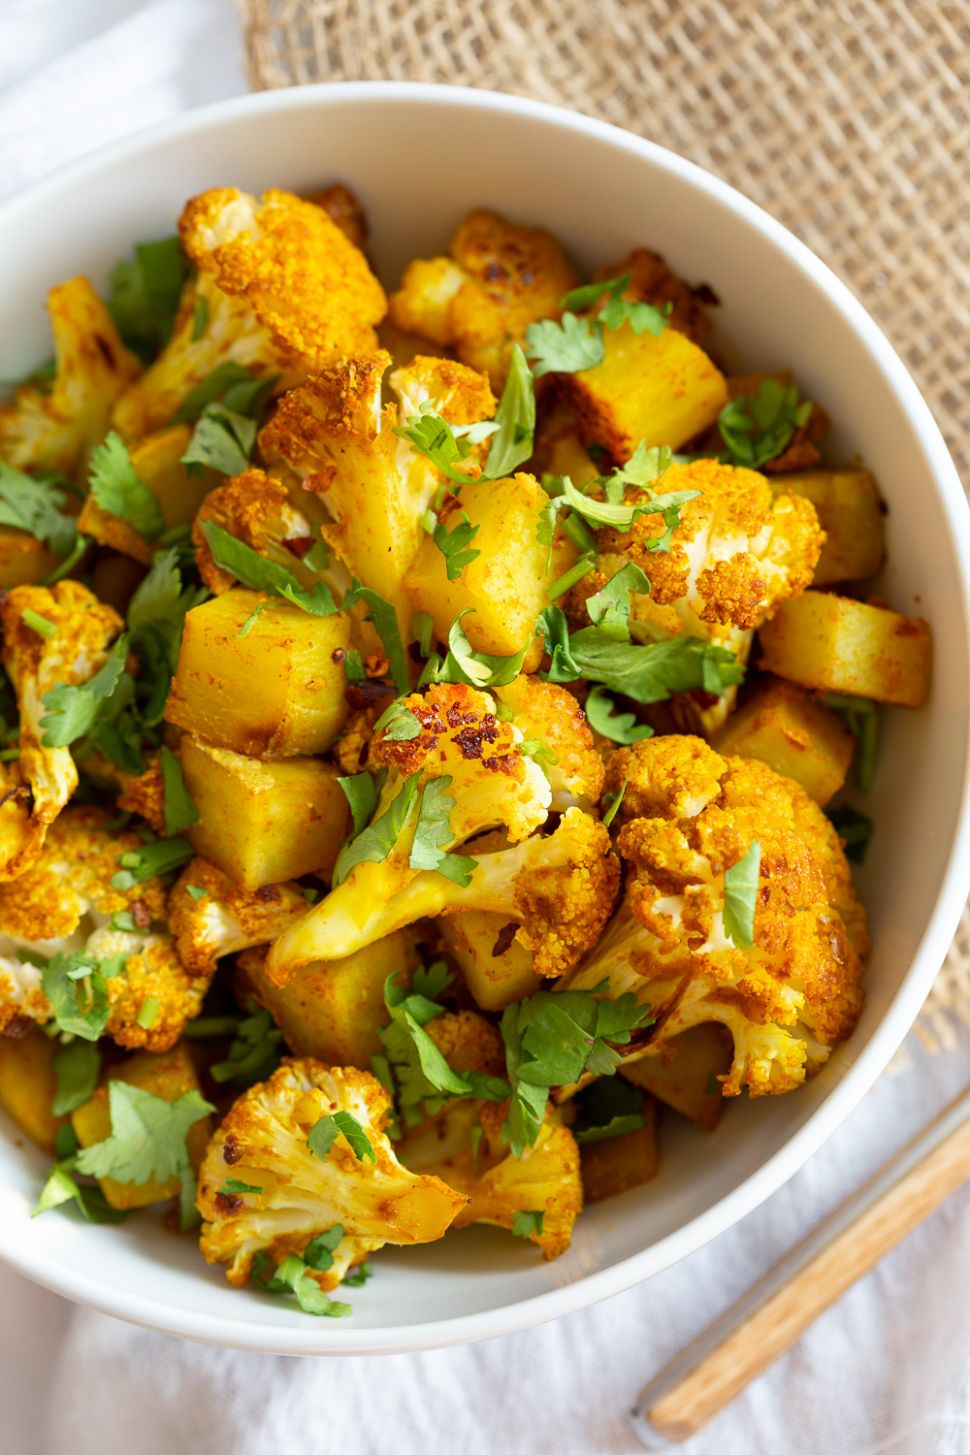 Baked Aloo Gobi Vegan Recipe (Indian Spiced Potato Cauliflower)